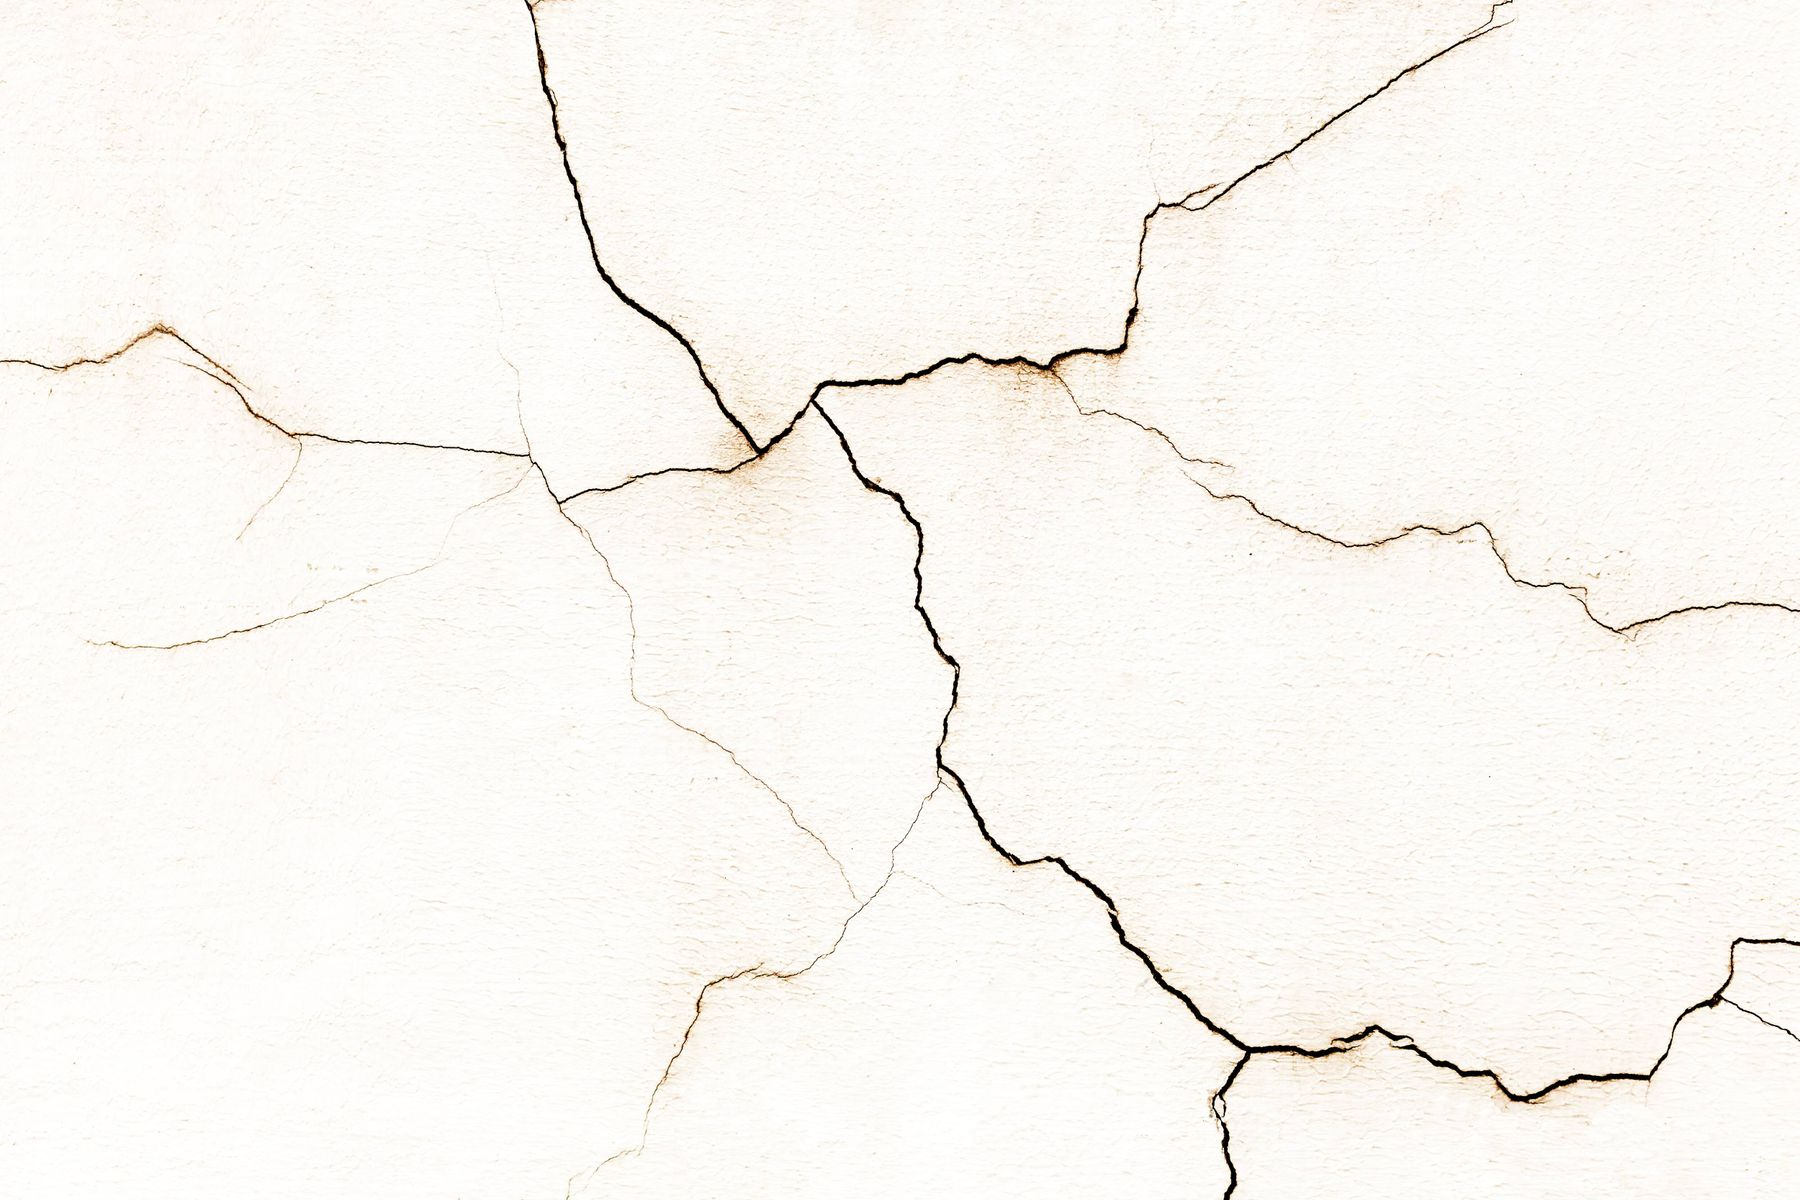 Found some cracks on your granite surface? Here are 4 simple ways to fix it!